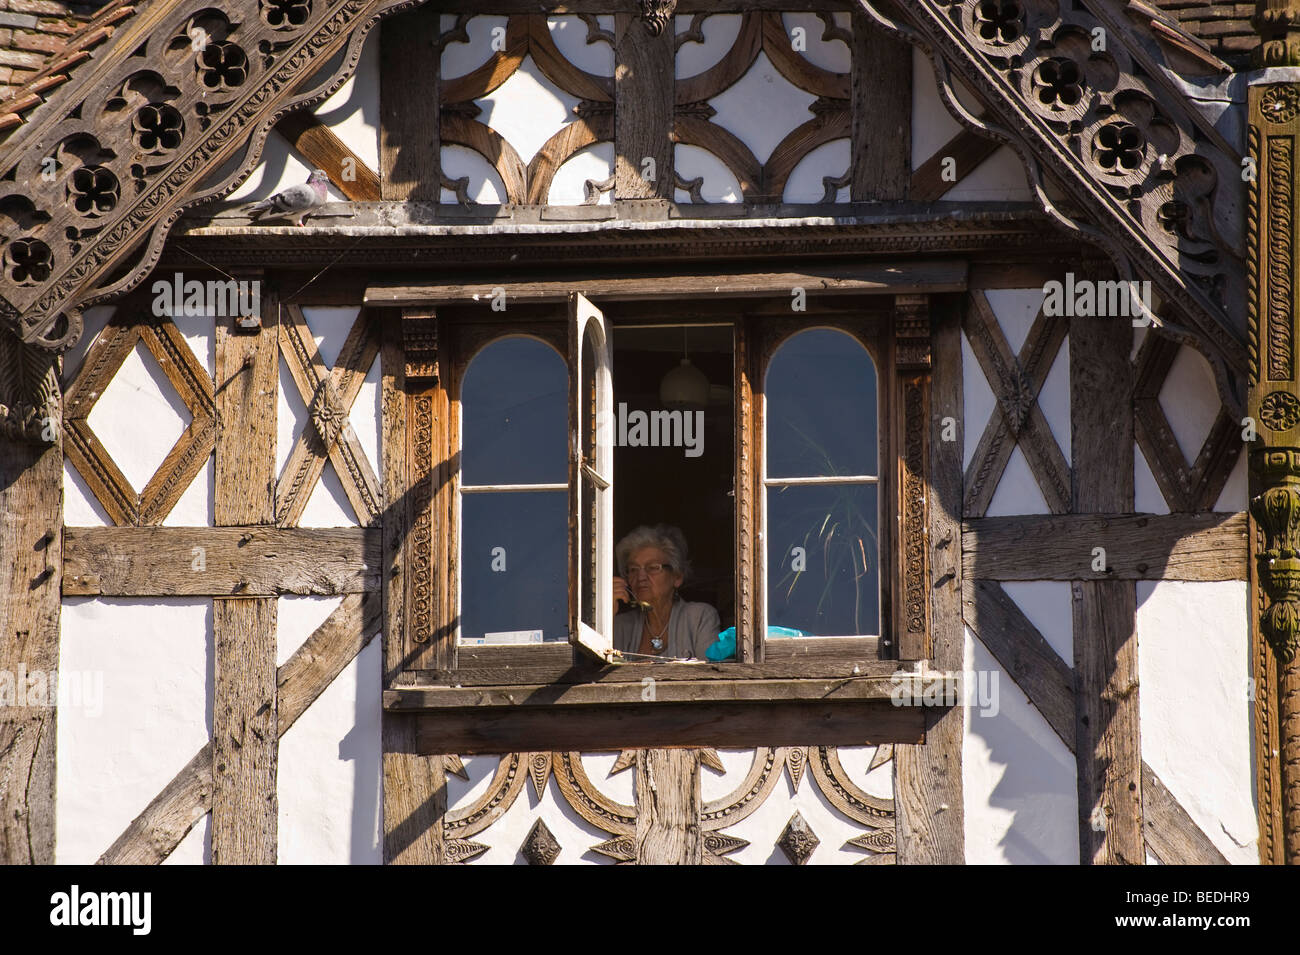 Elderly woman looking out of window of timber framed house Ludlow Shropshire England UK - Stock Image